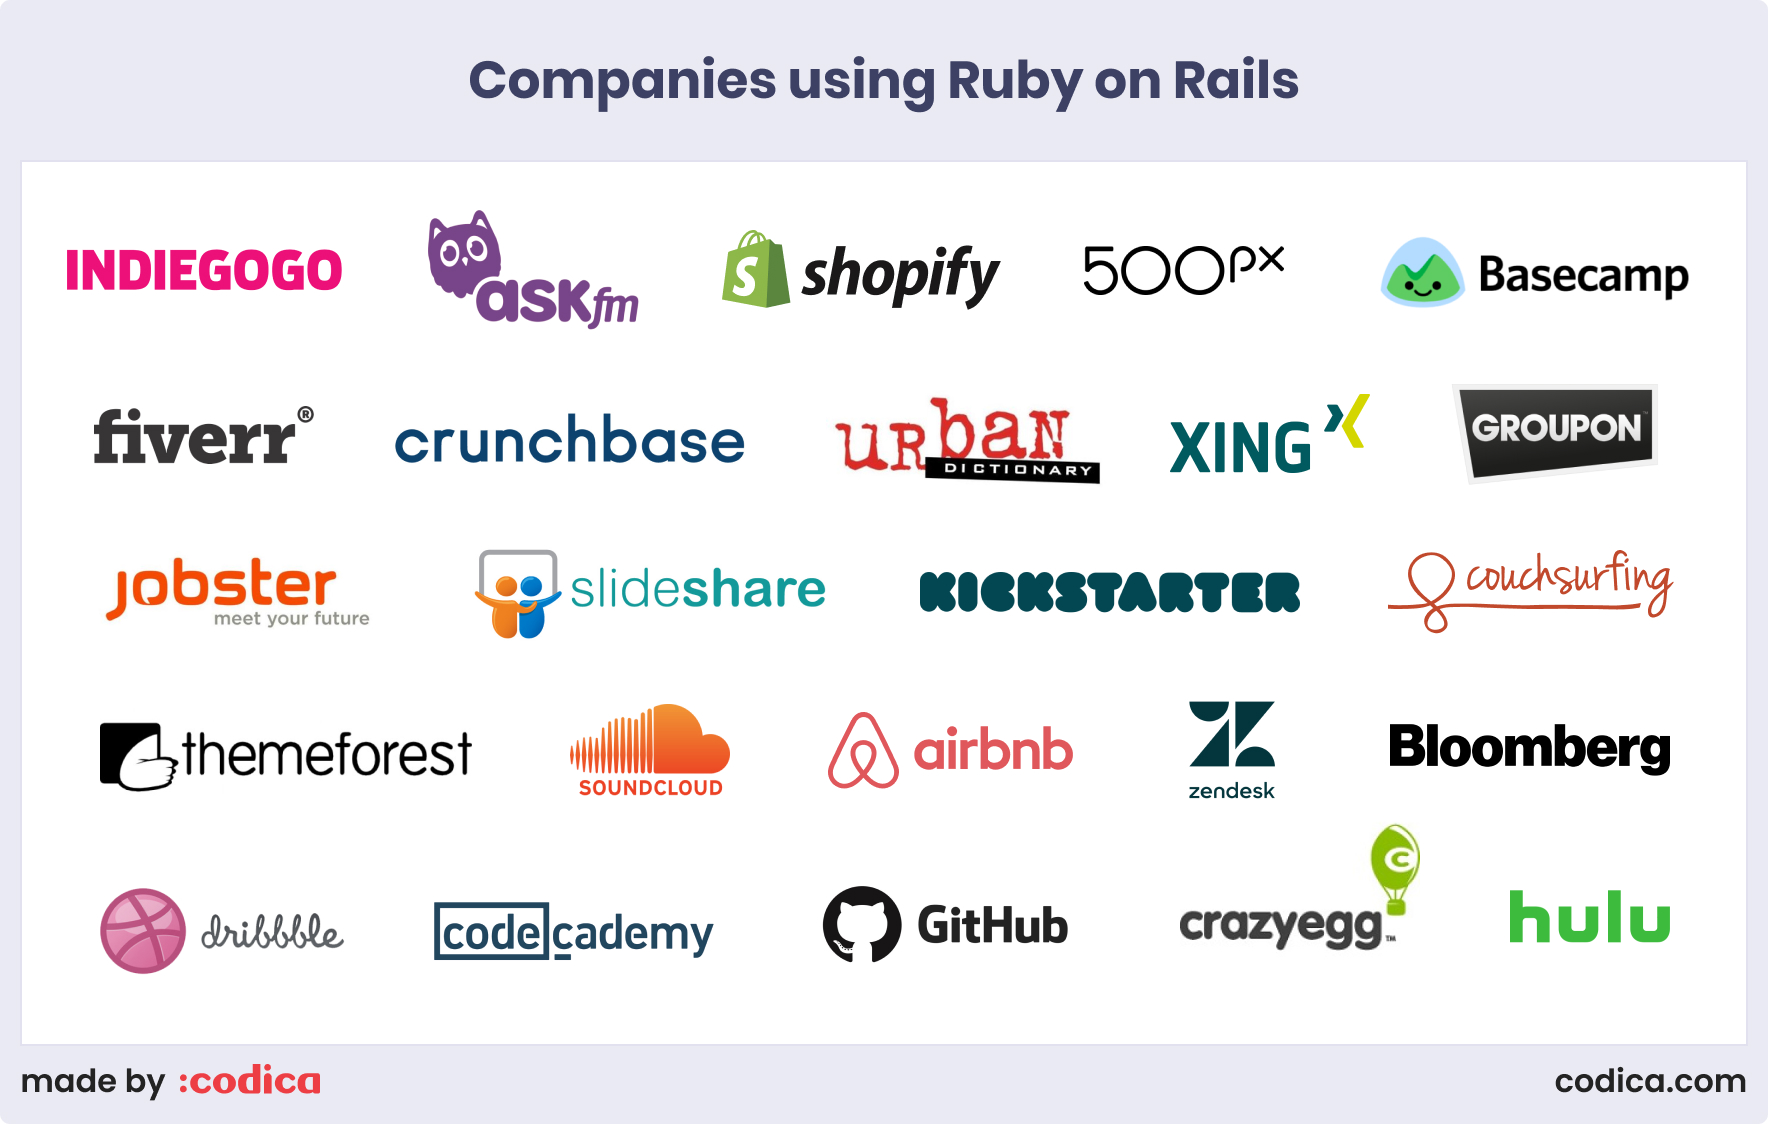 Companies using Ruby on Rails for their websites| Codica